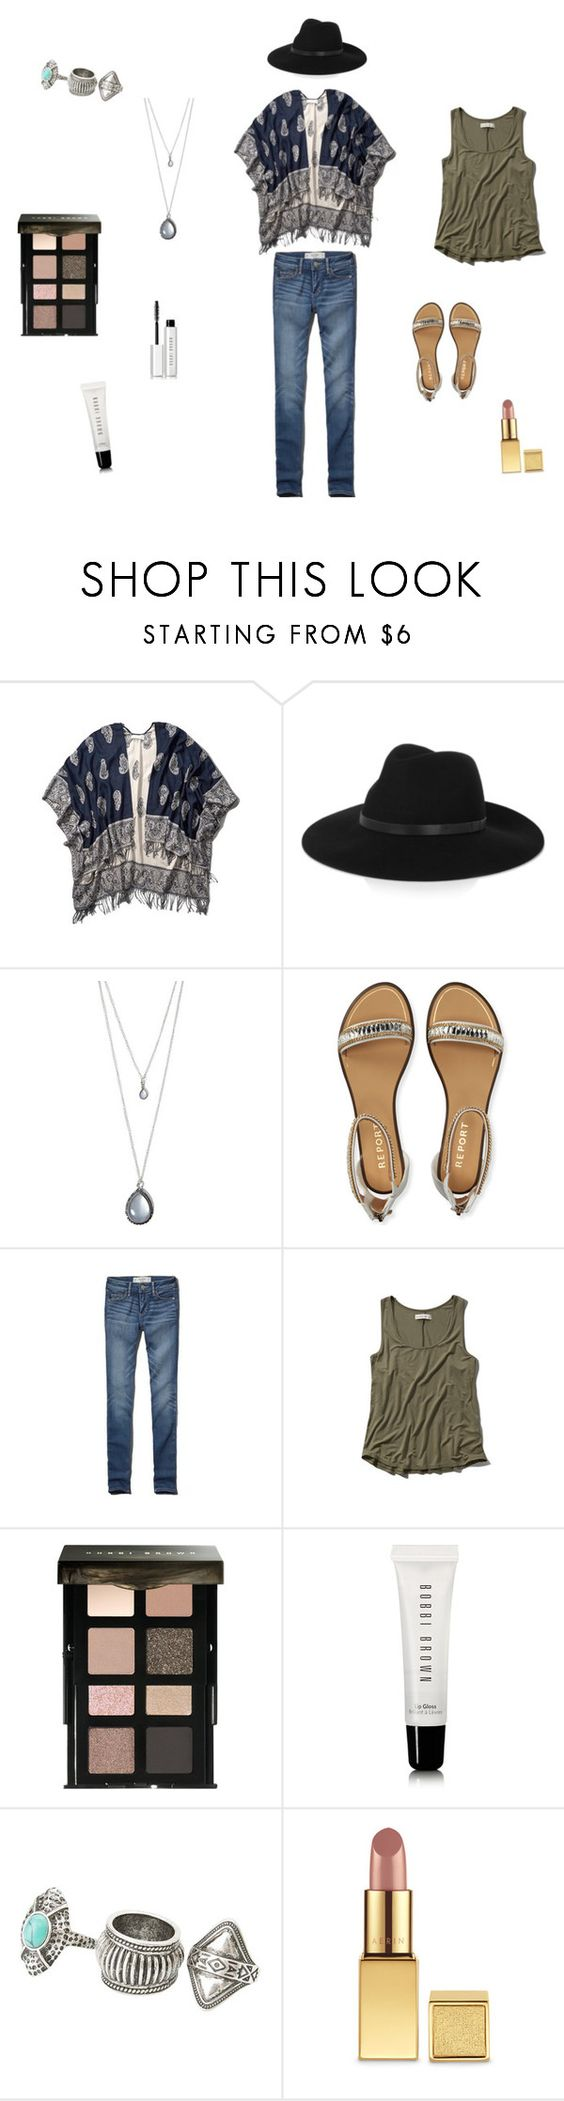 """""""AriaM. Fashion"""" by lydiamart ❤ liked on Polyvore featuring Abercrombie & Fitch, By Malene Birger, Forever 21, Aéropostale, Bobbi Brown Cosmetics, MANGO and AERIN"""